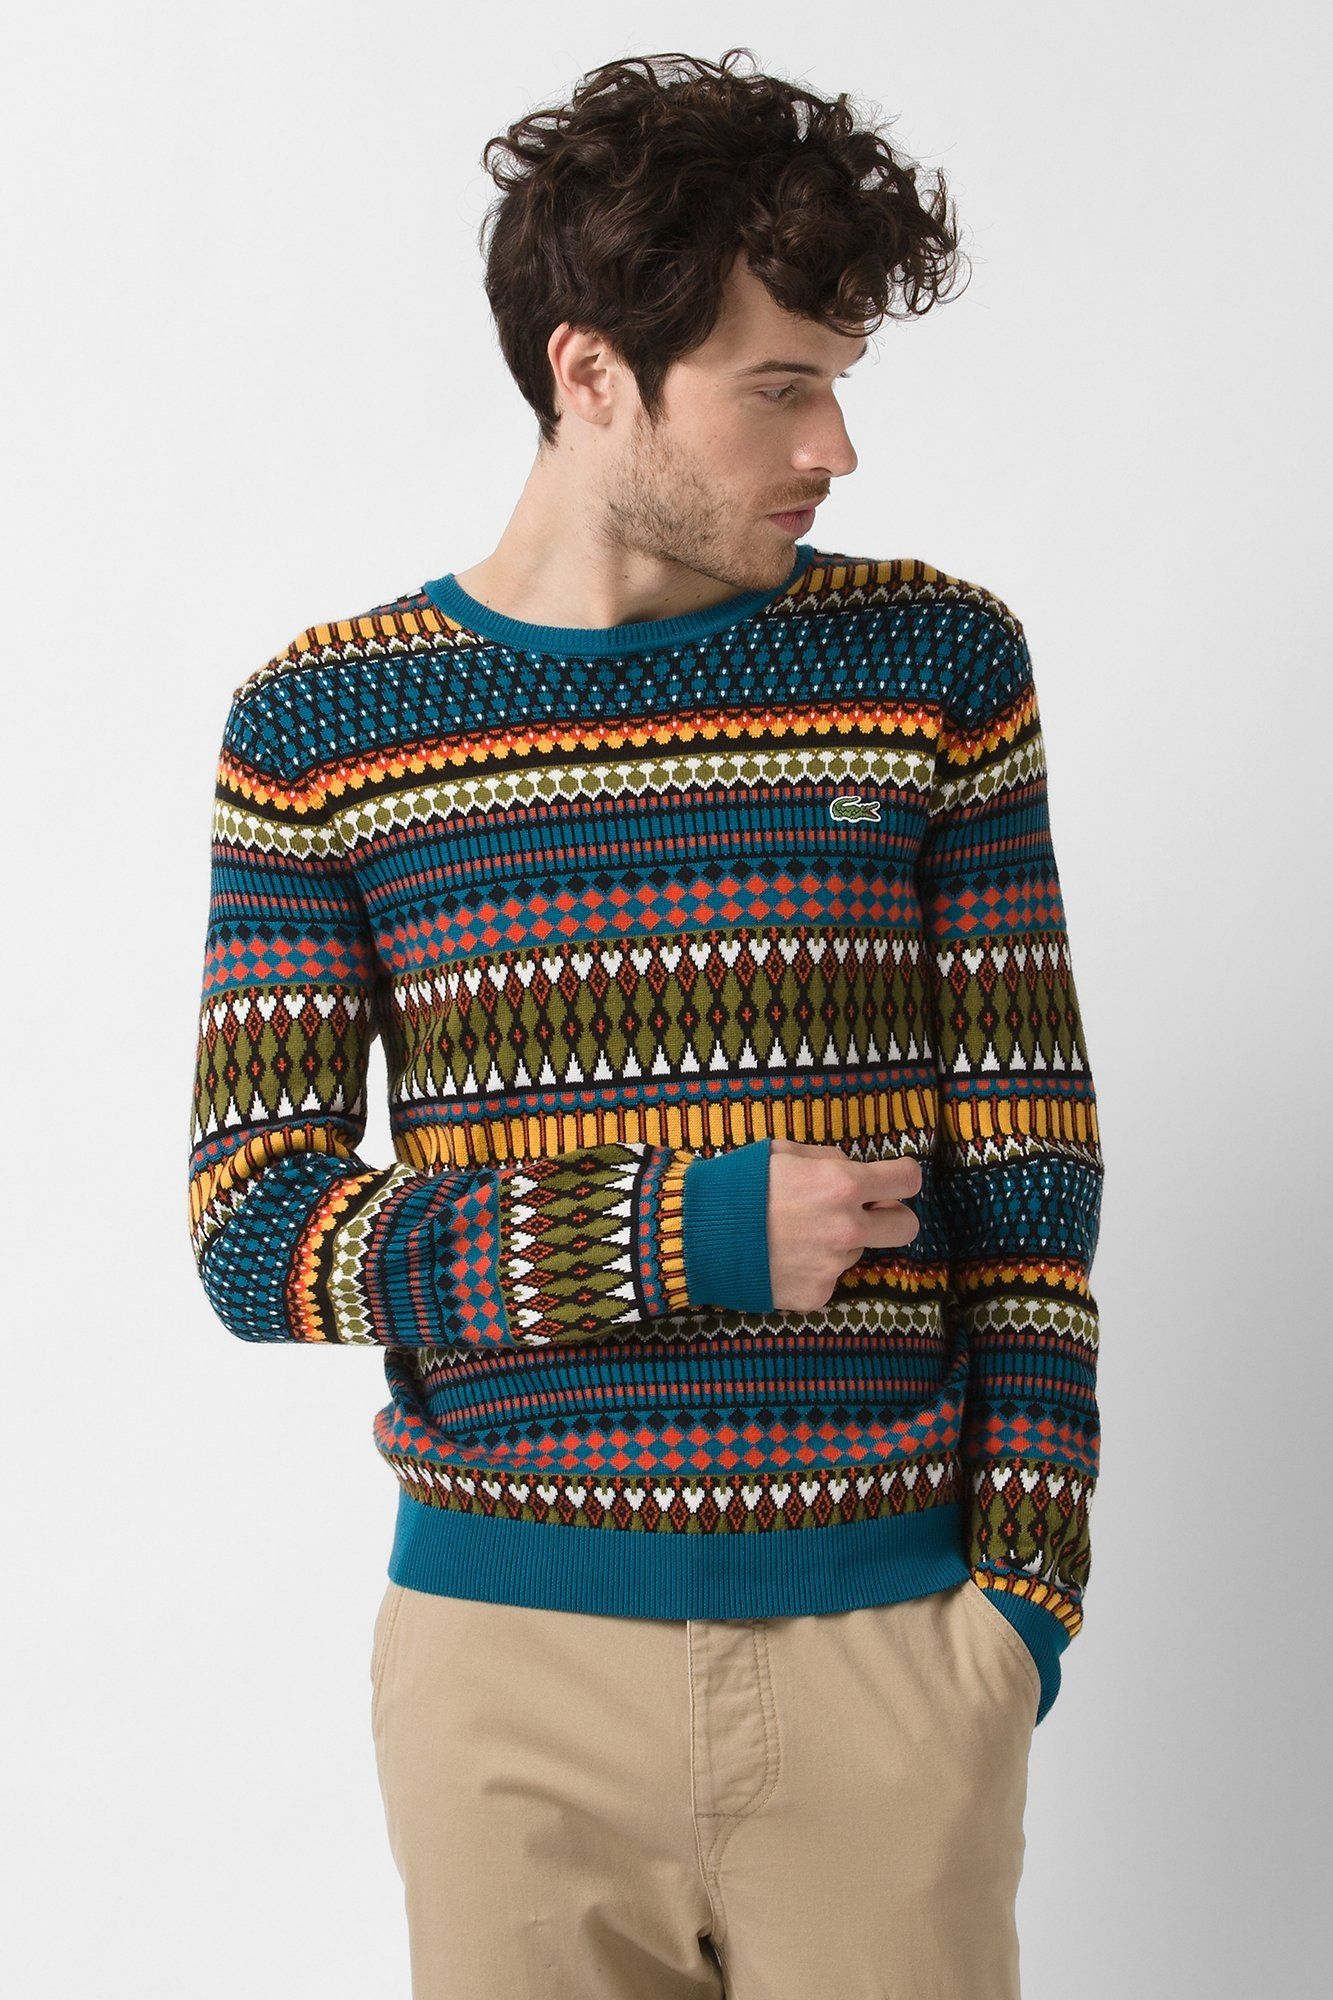 5c9e31bfe8e1 of course this would be out of stock! Lacoste L!VE Aztec Pattern Sweater